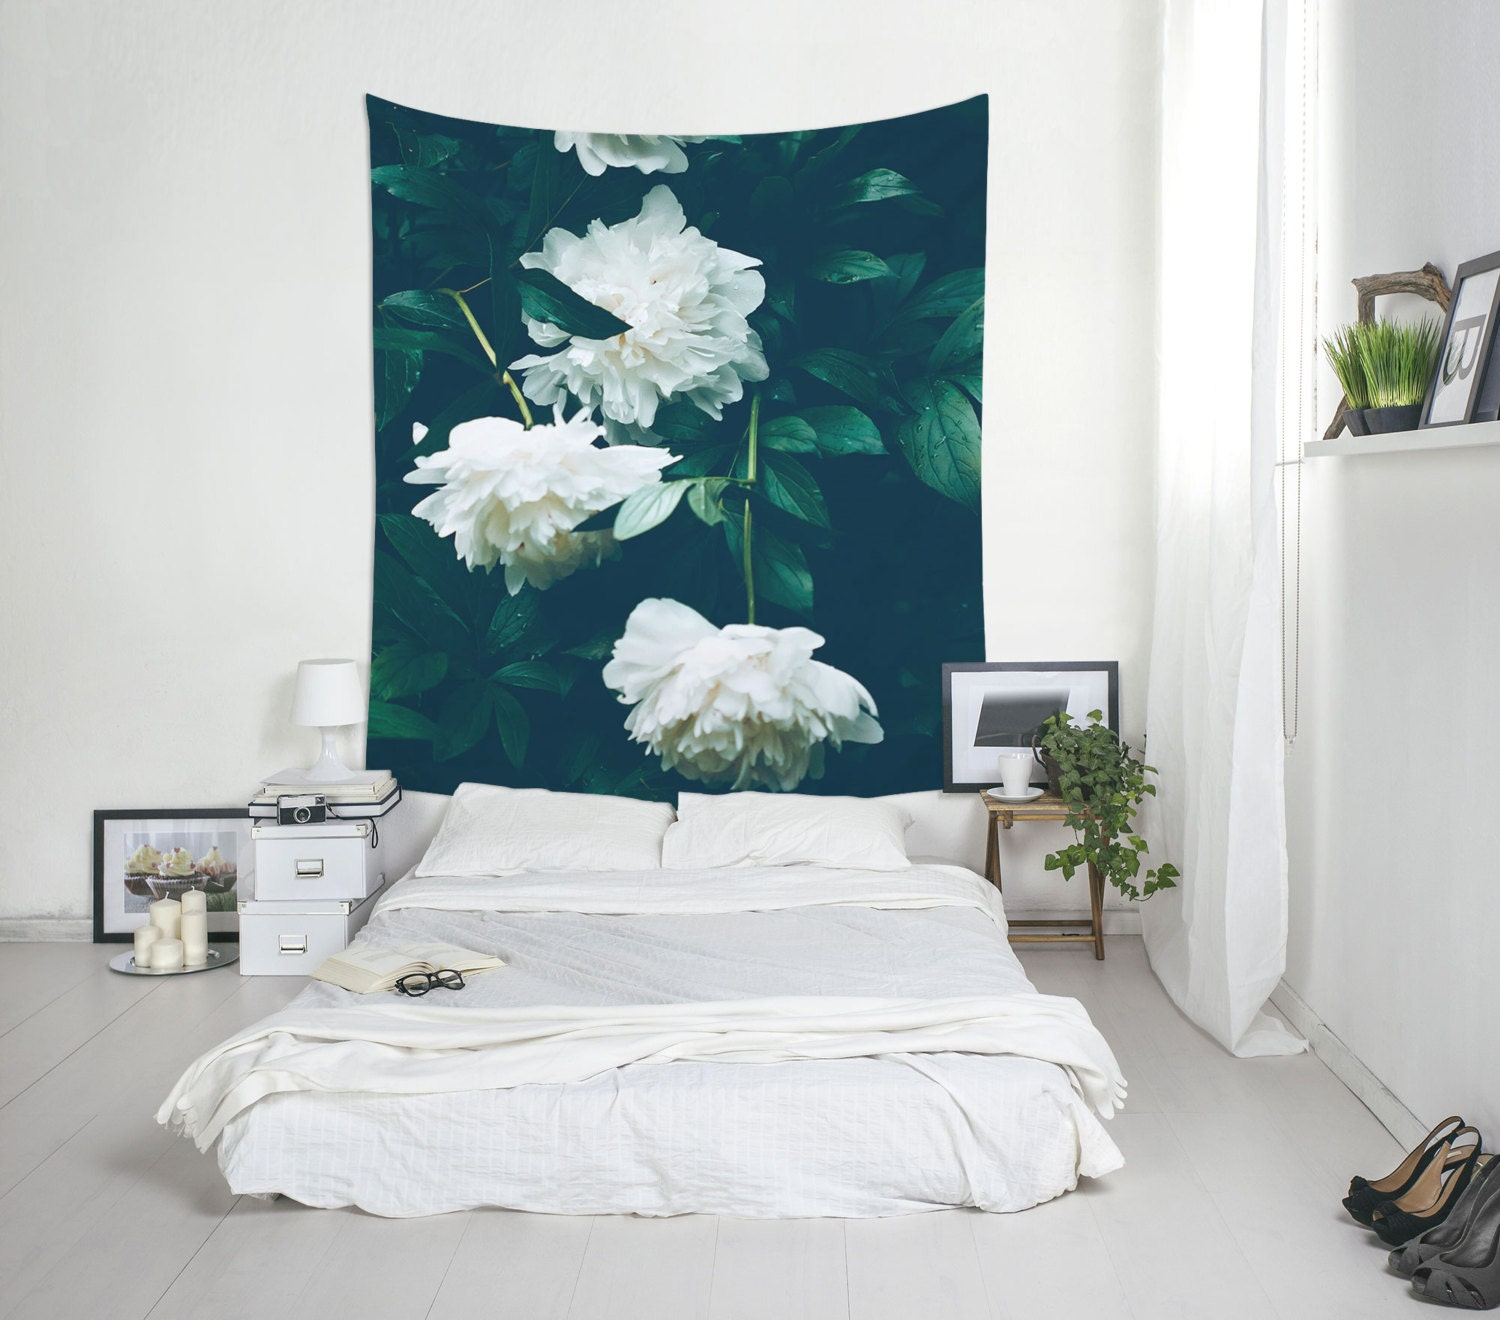 Wall Decor White Flowers : White flowers tapestry peonies wall art home decoration